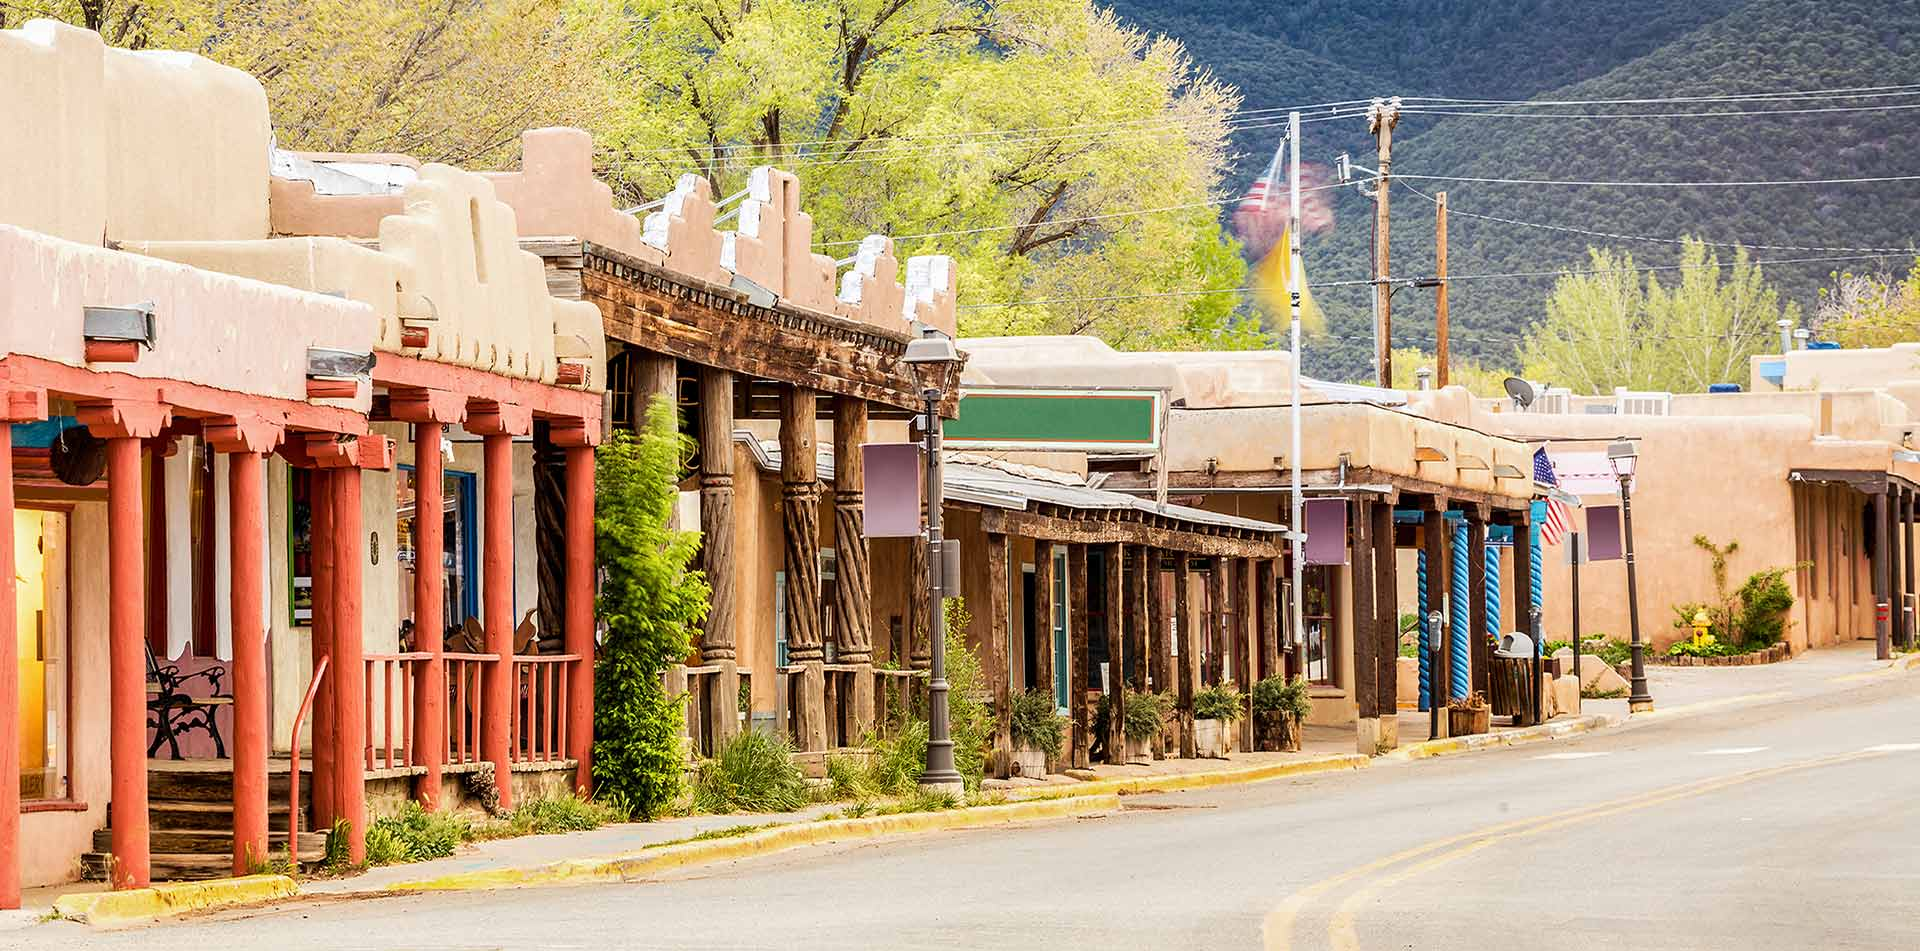 Street and Buildings in Taos, New Mexico